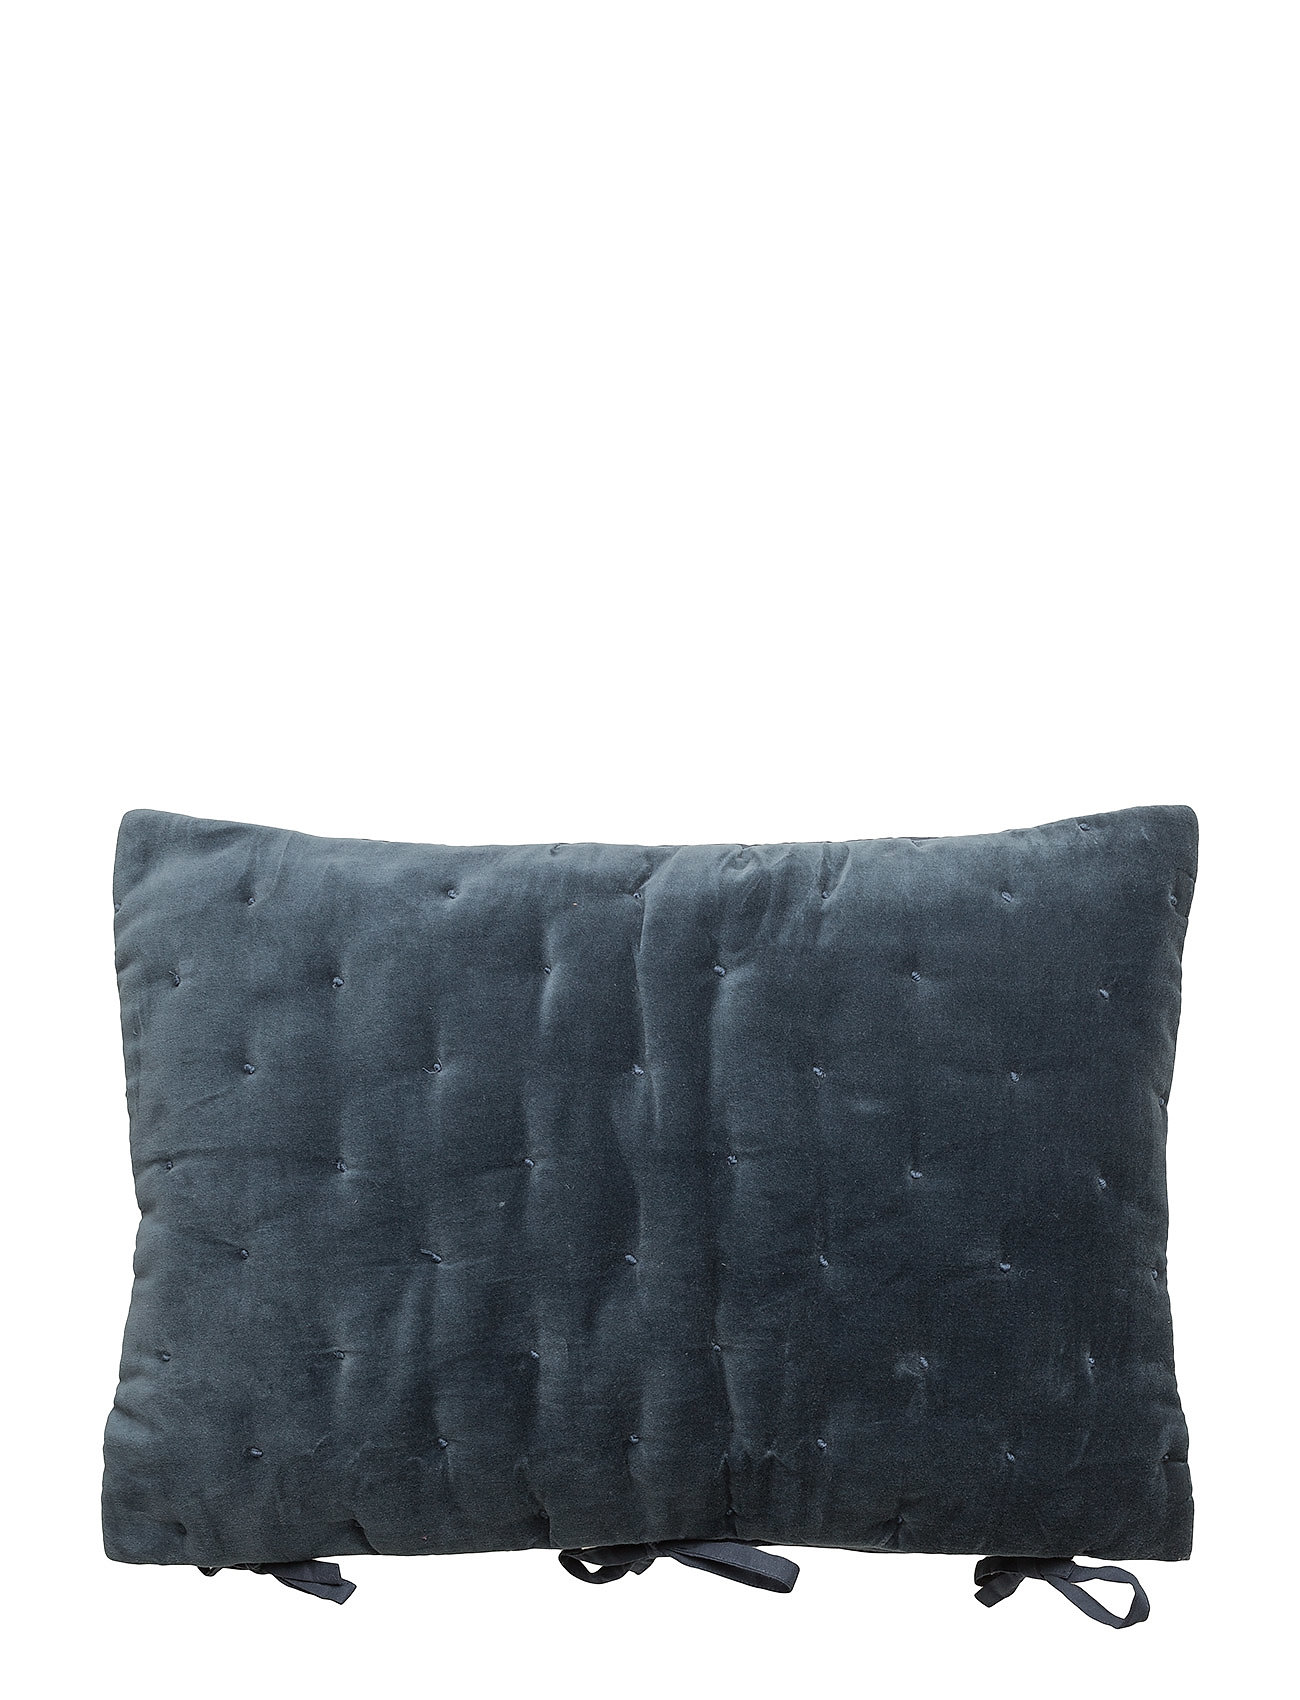 DAY Home Nuovo Velvet Quilted Cushion Cover - NIGHT SKY